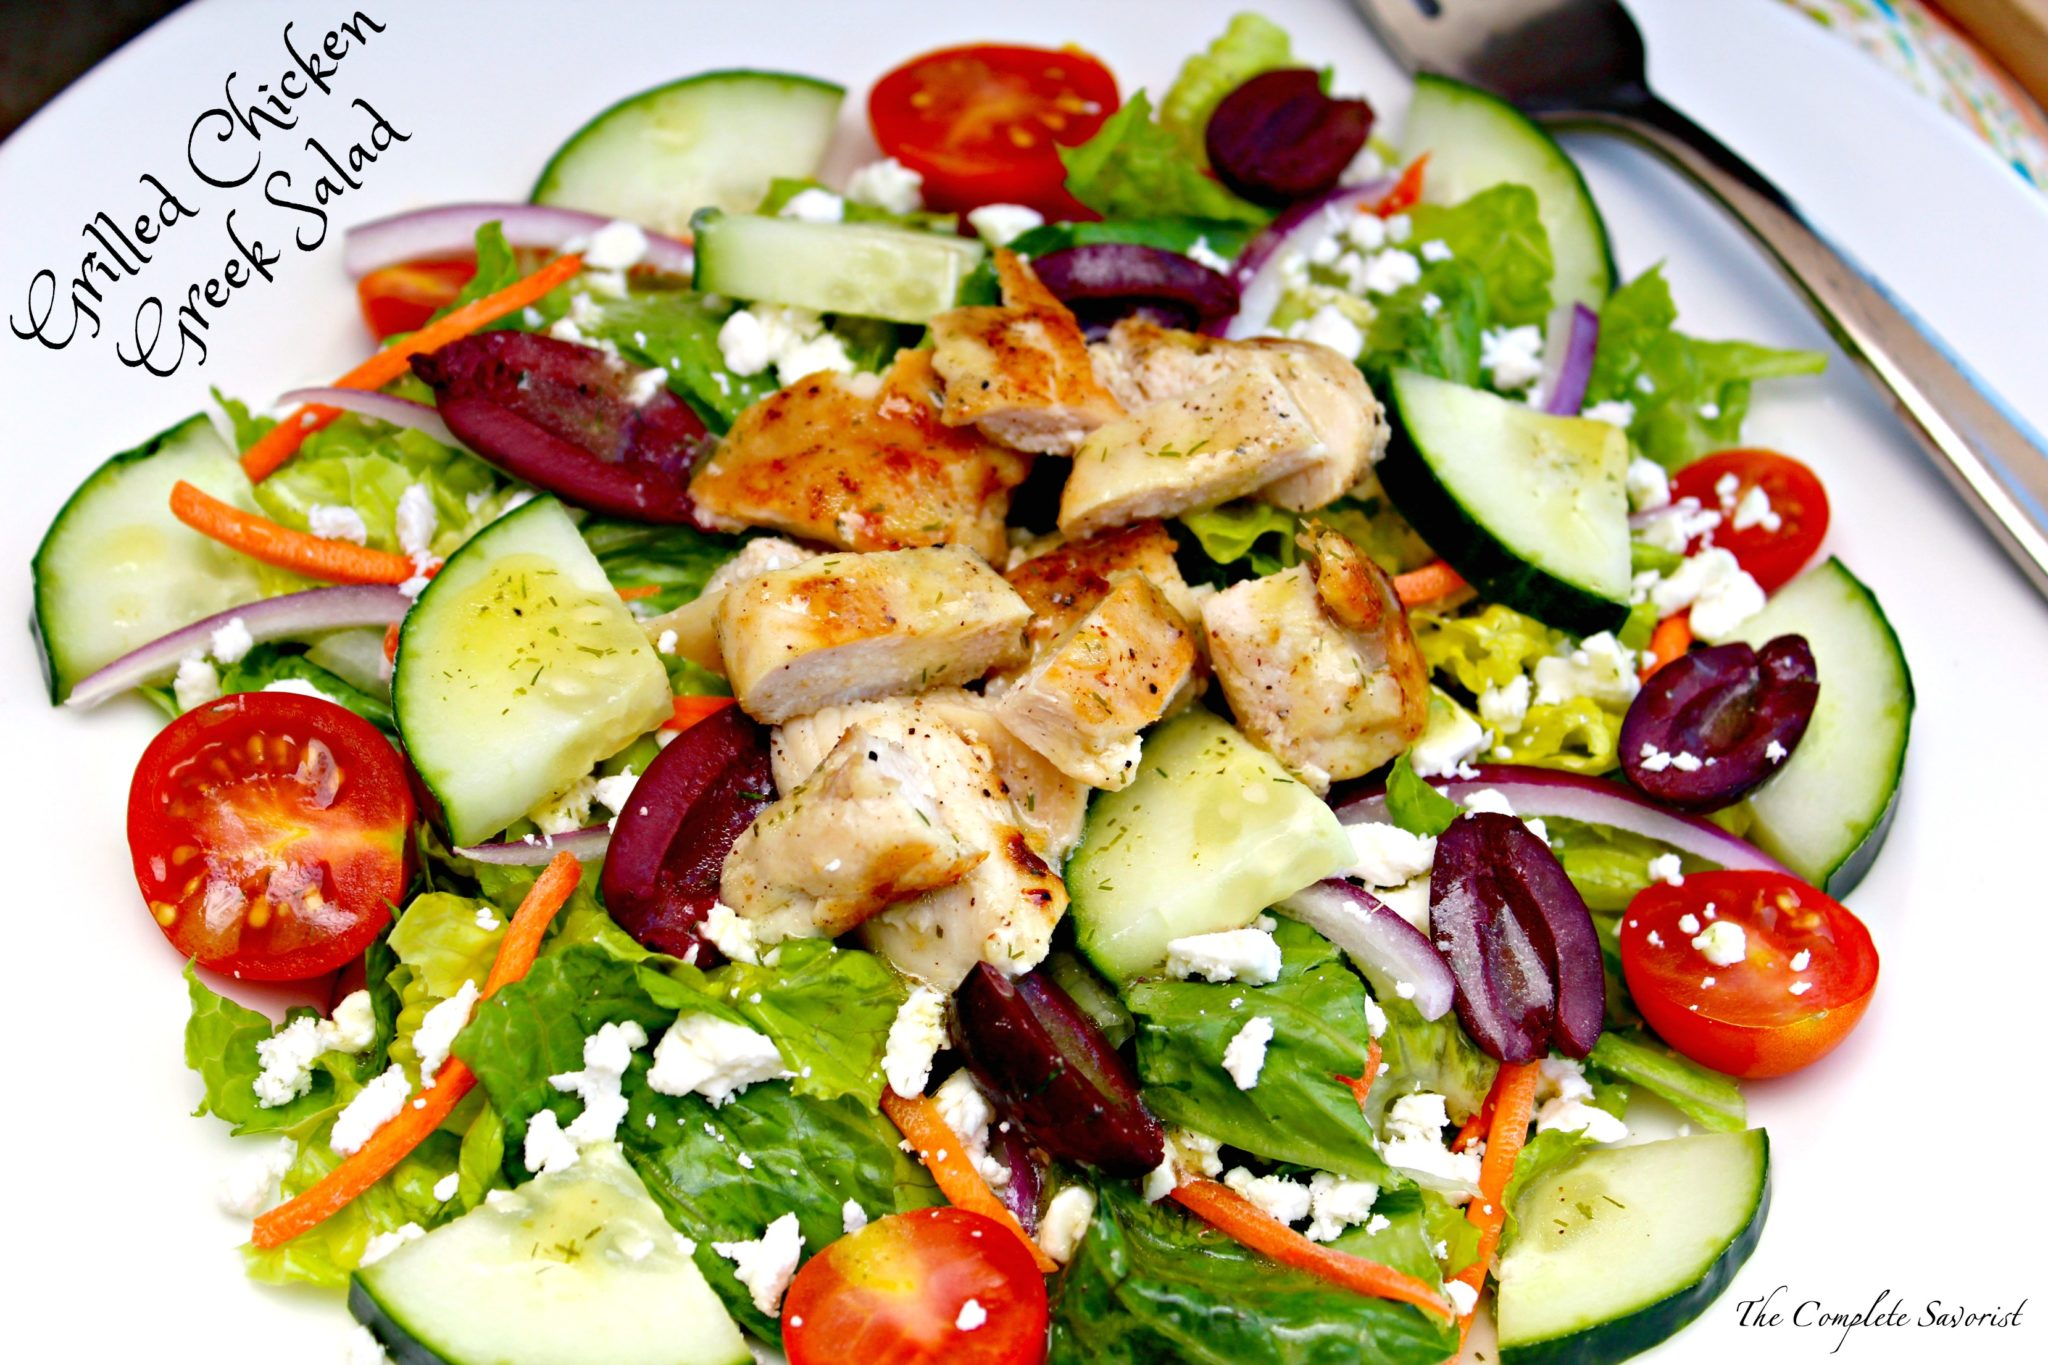 Grilled Chicken Greek Salad - The Complete Savorist